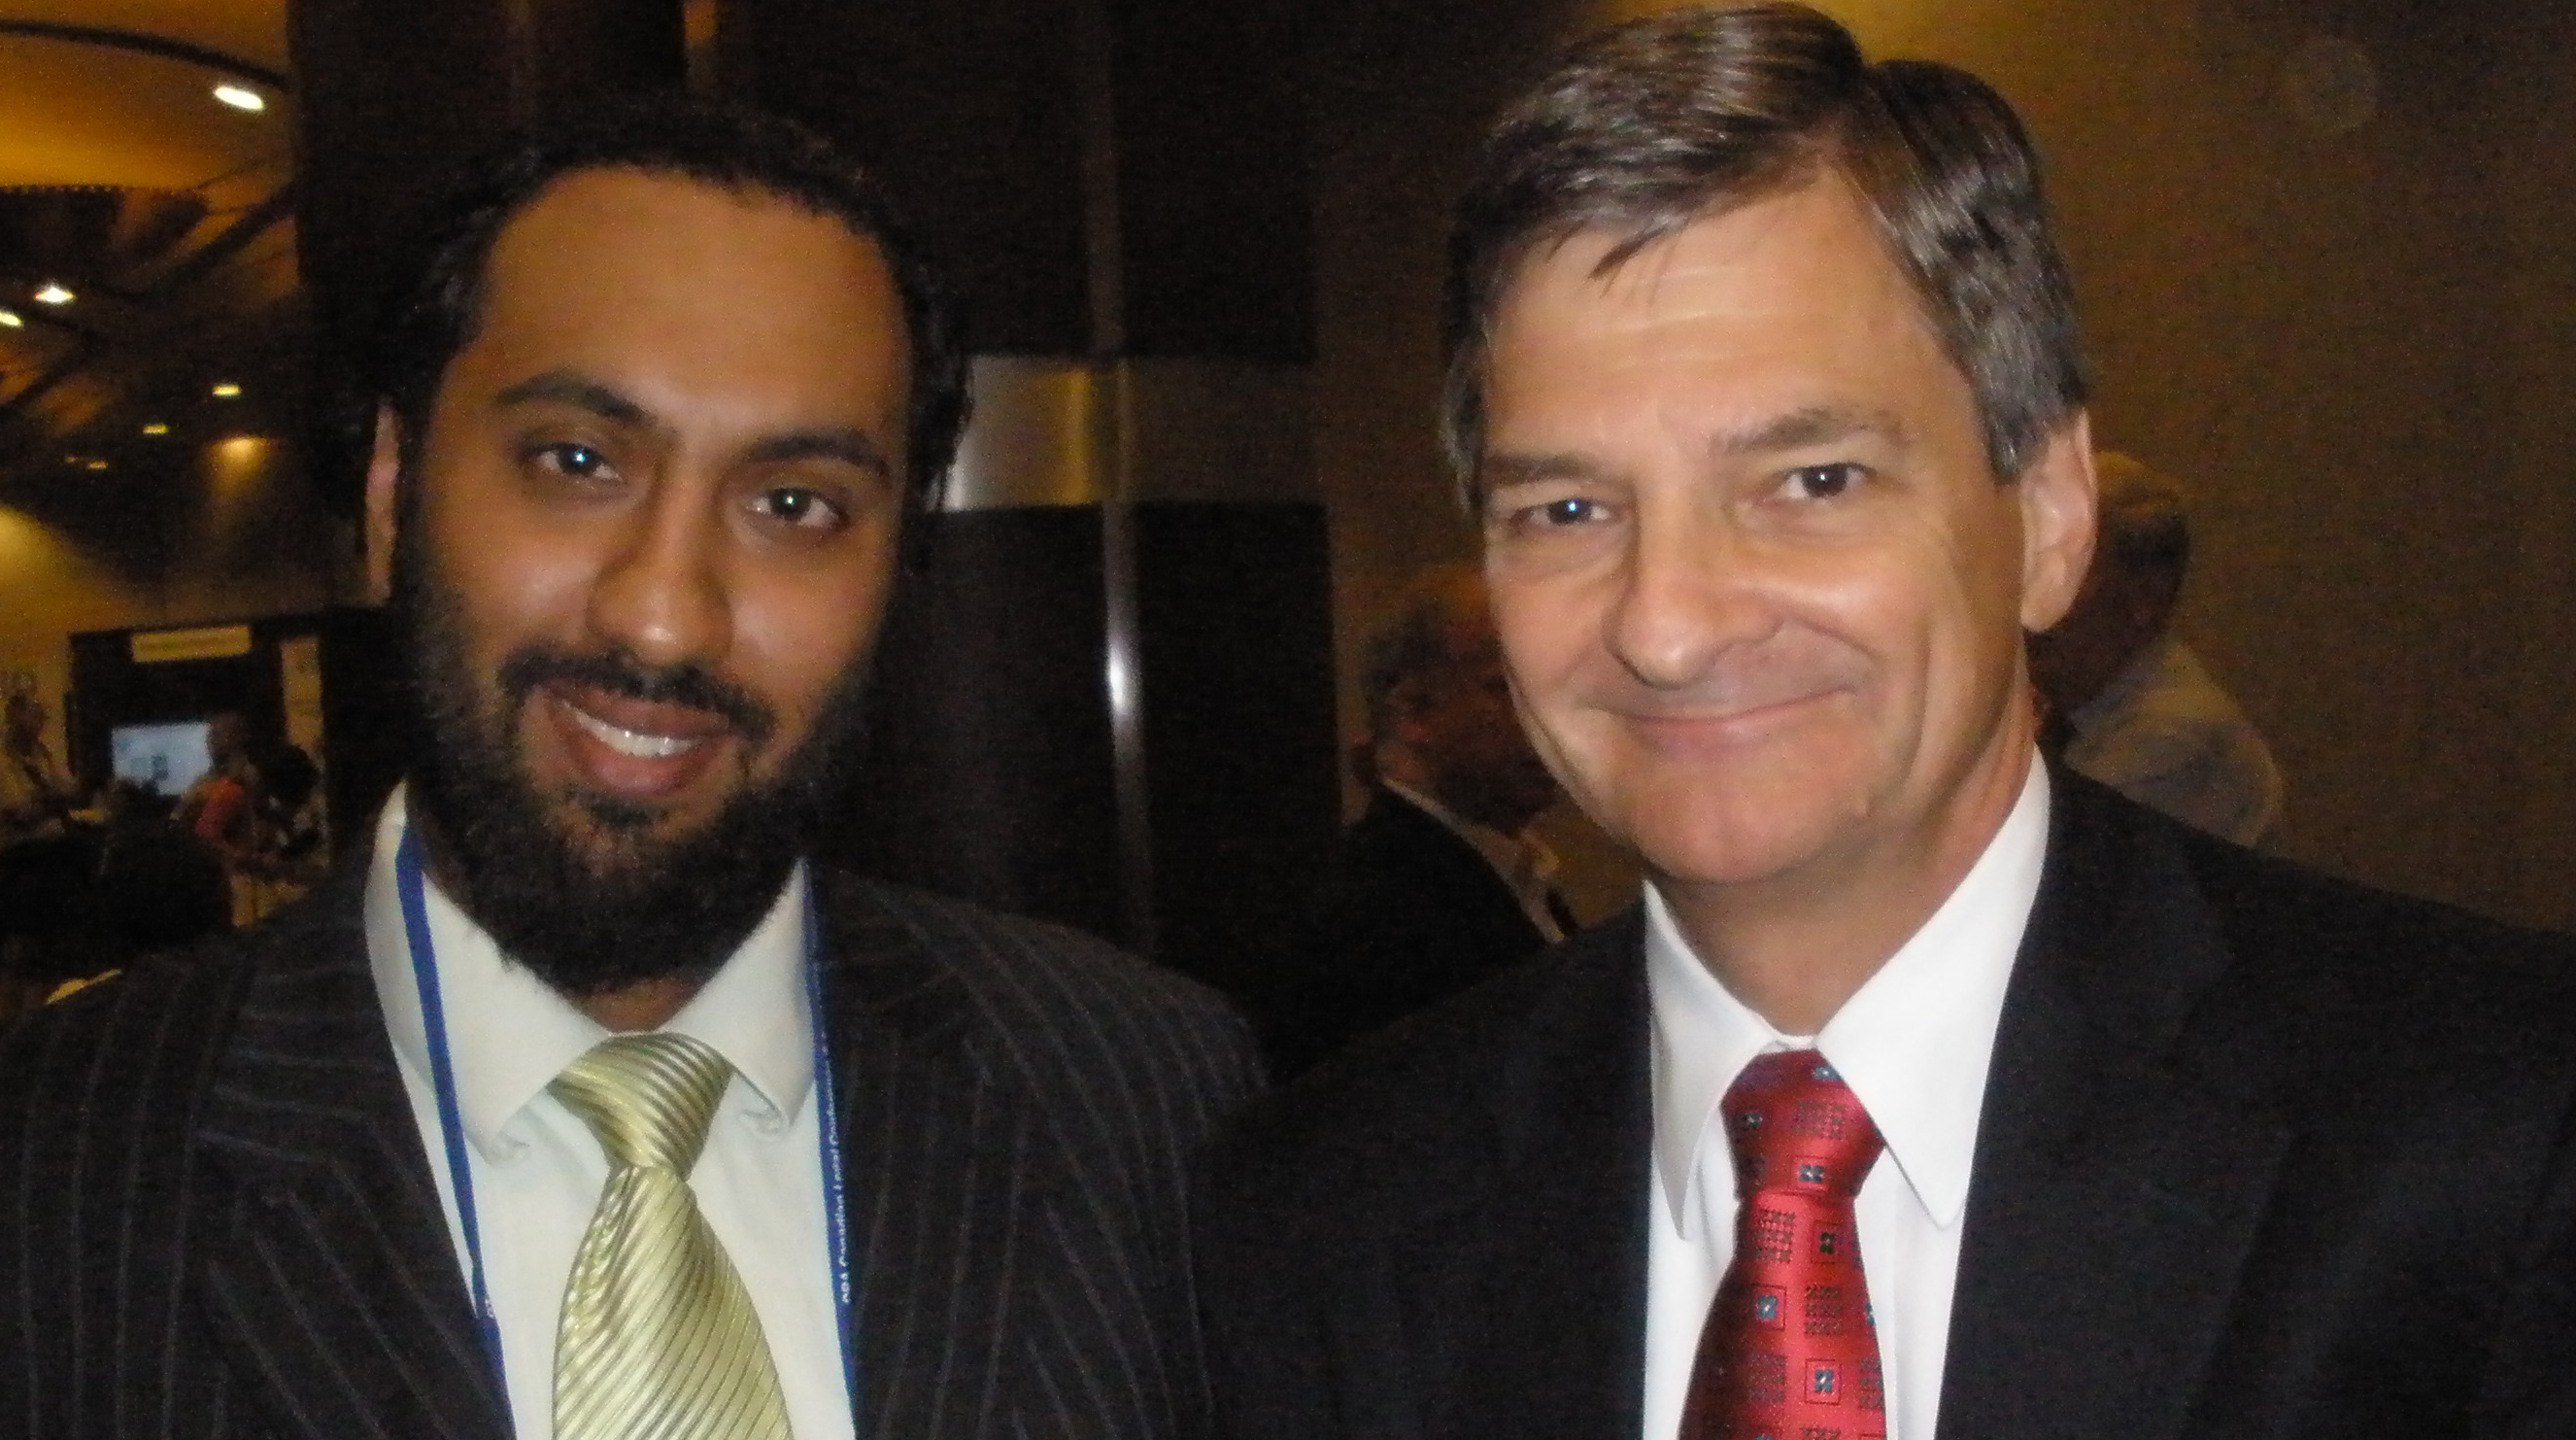 Omar Ha-Redeye with Hon. Christopher Bentley, Attorney-General of Ontario